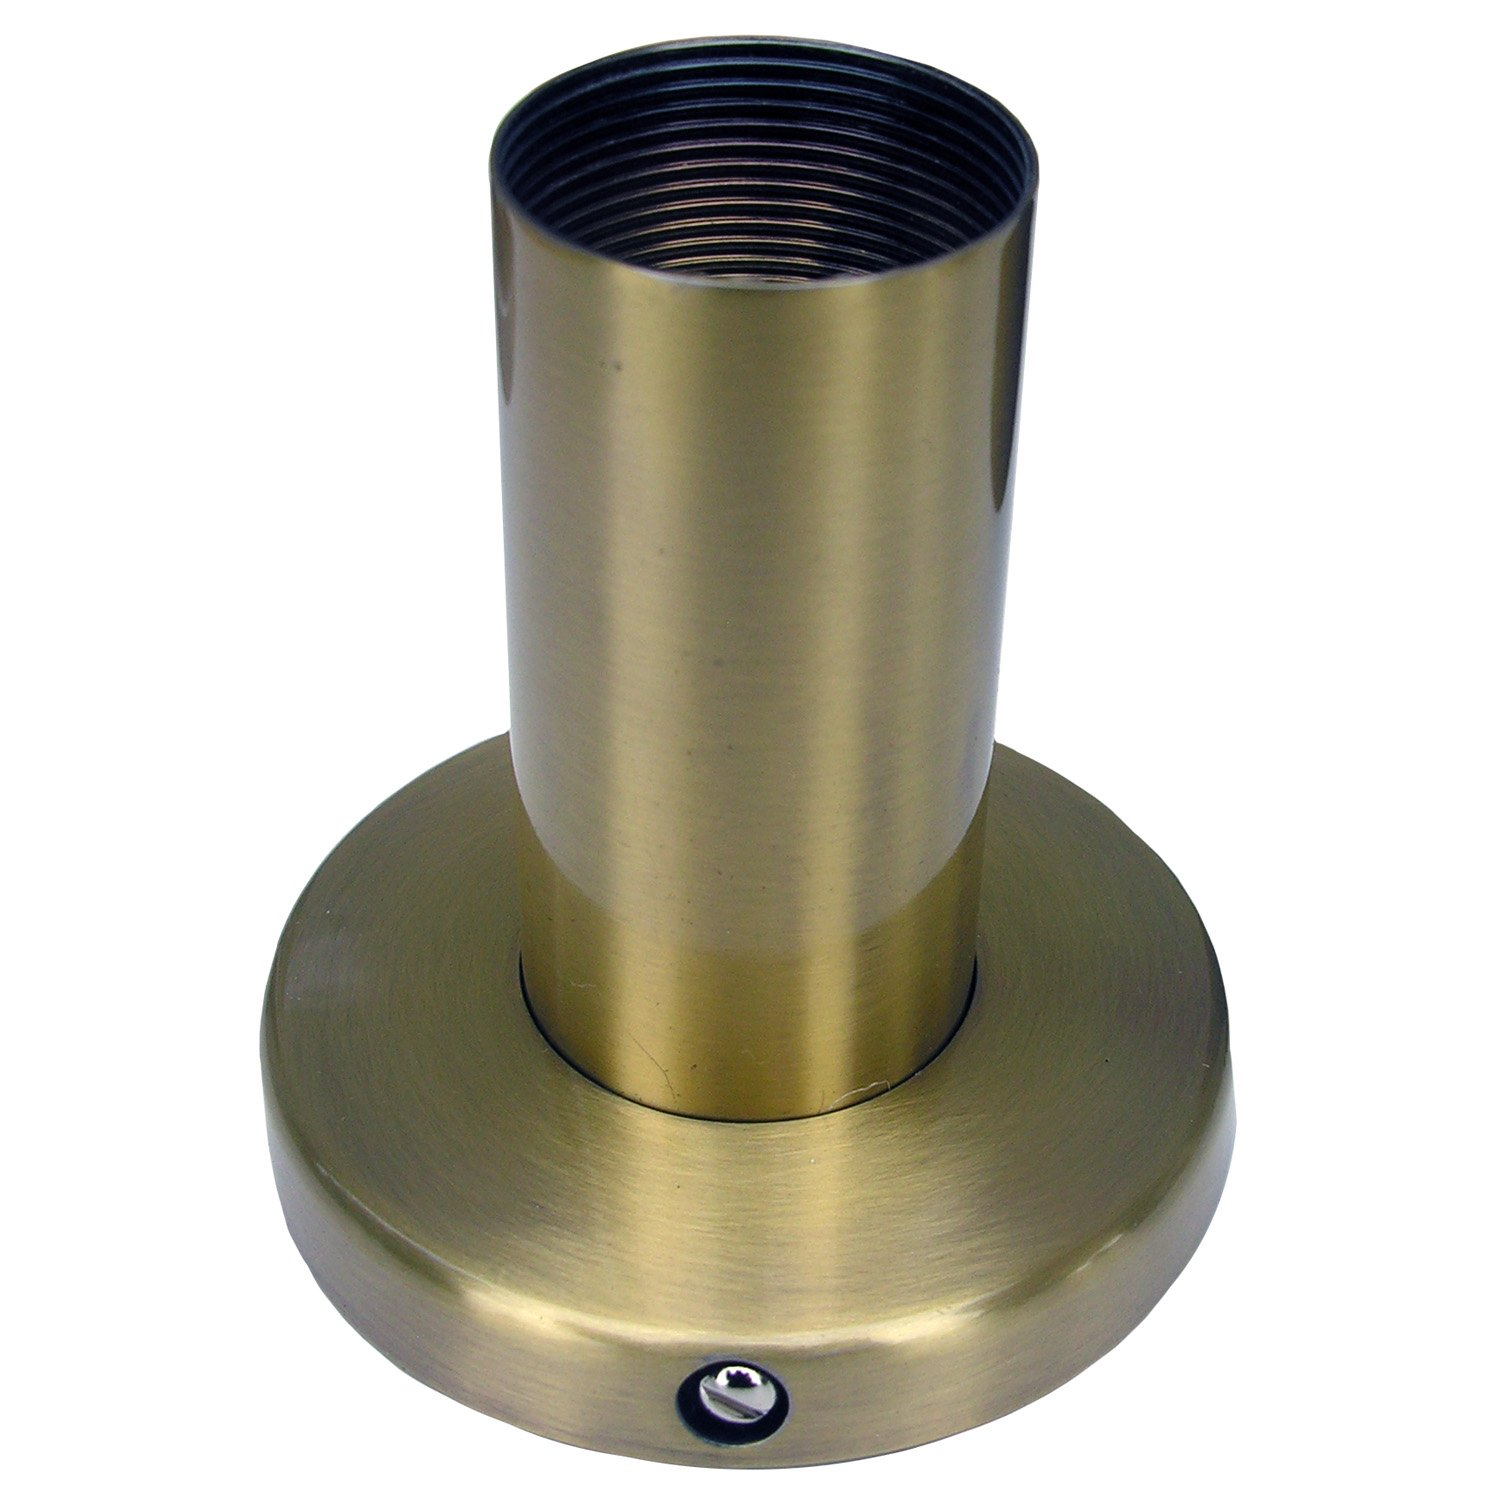 Simpatico 31551A Tube And Set Screw Flange For Price Pfister With Crown Imperial Shower Stem Antique Brass